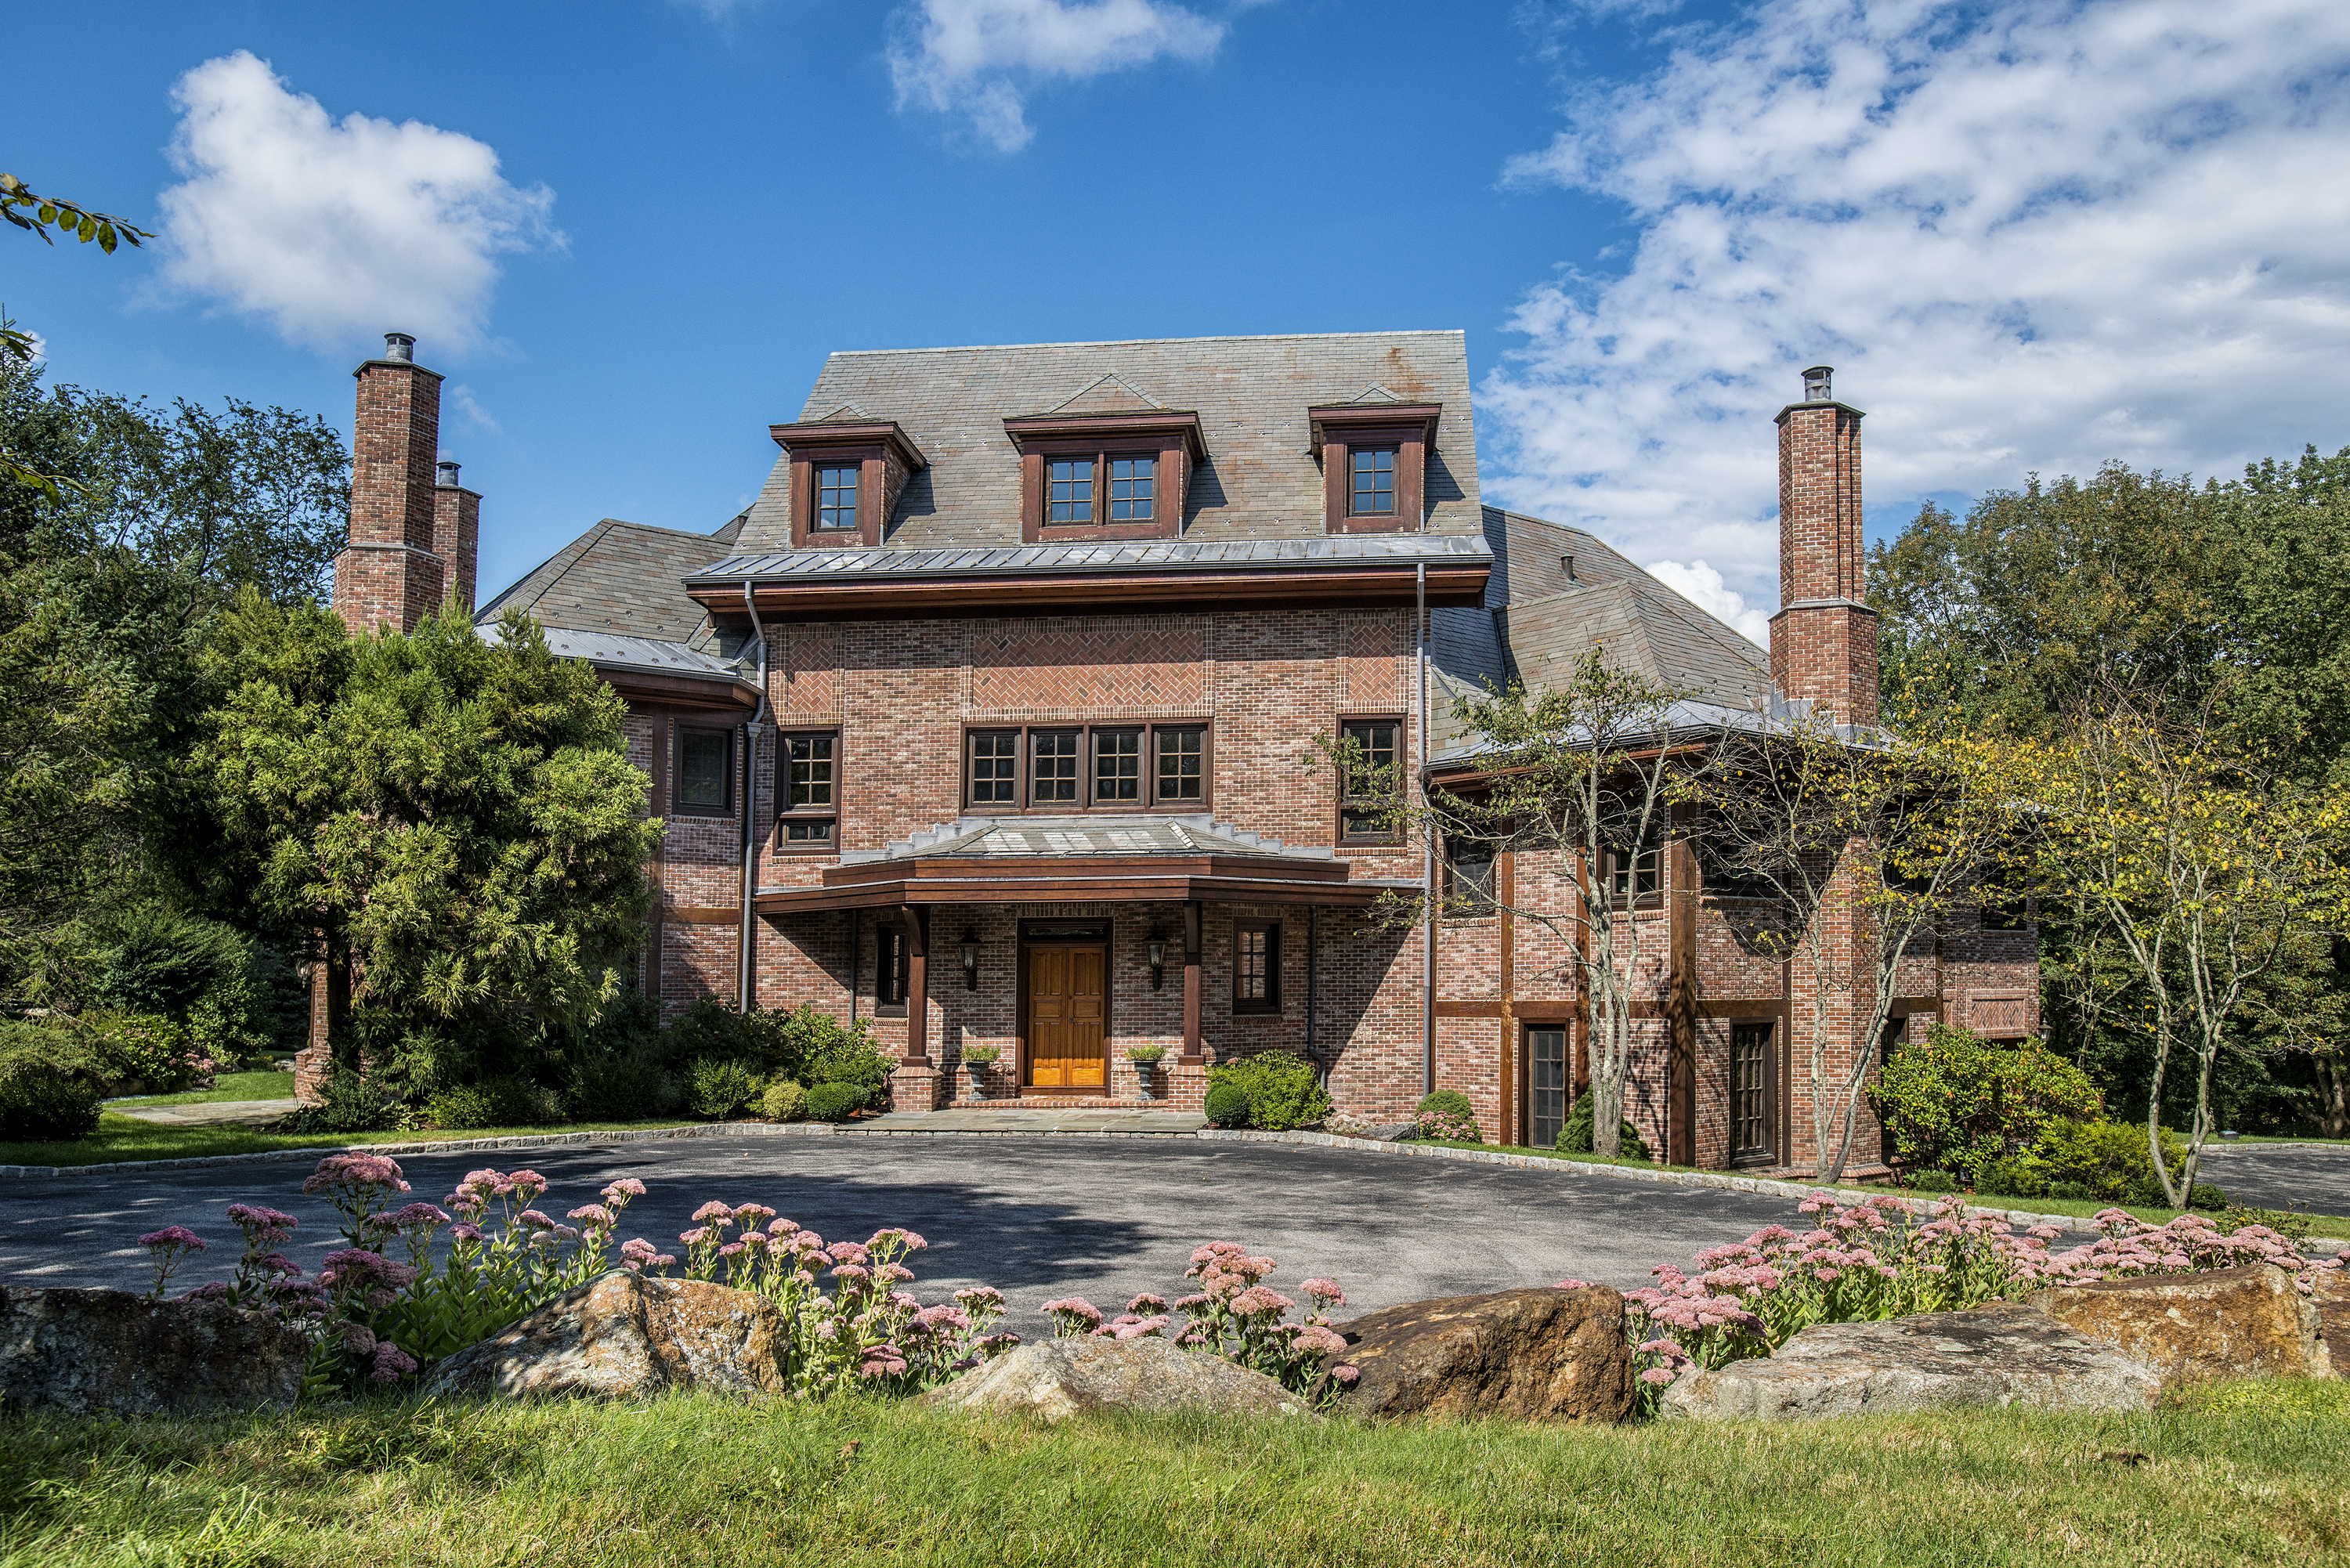 Single Family Home for Sale at Magnificent Edwin Luytens Georgian Manor 913 Oenoke Ridge New Canaan, Connecticut 06840 United States